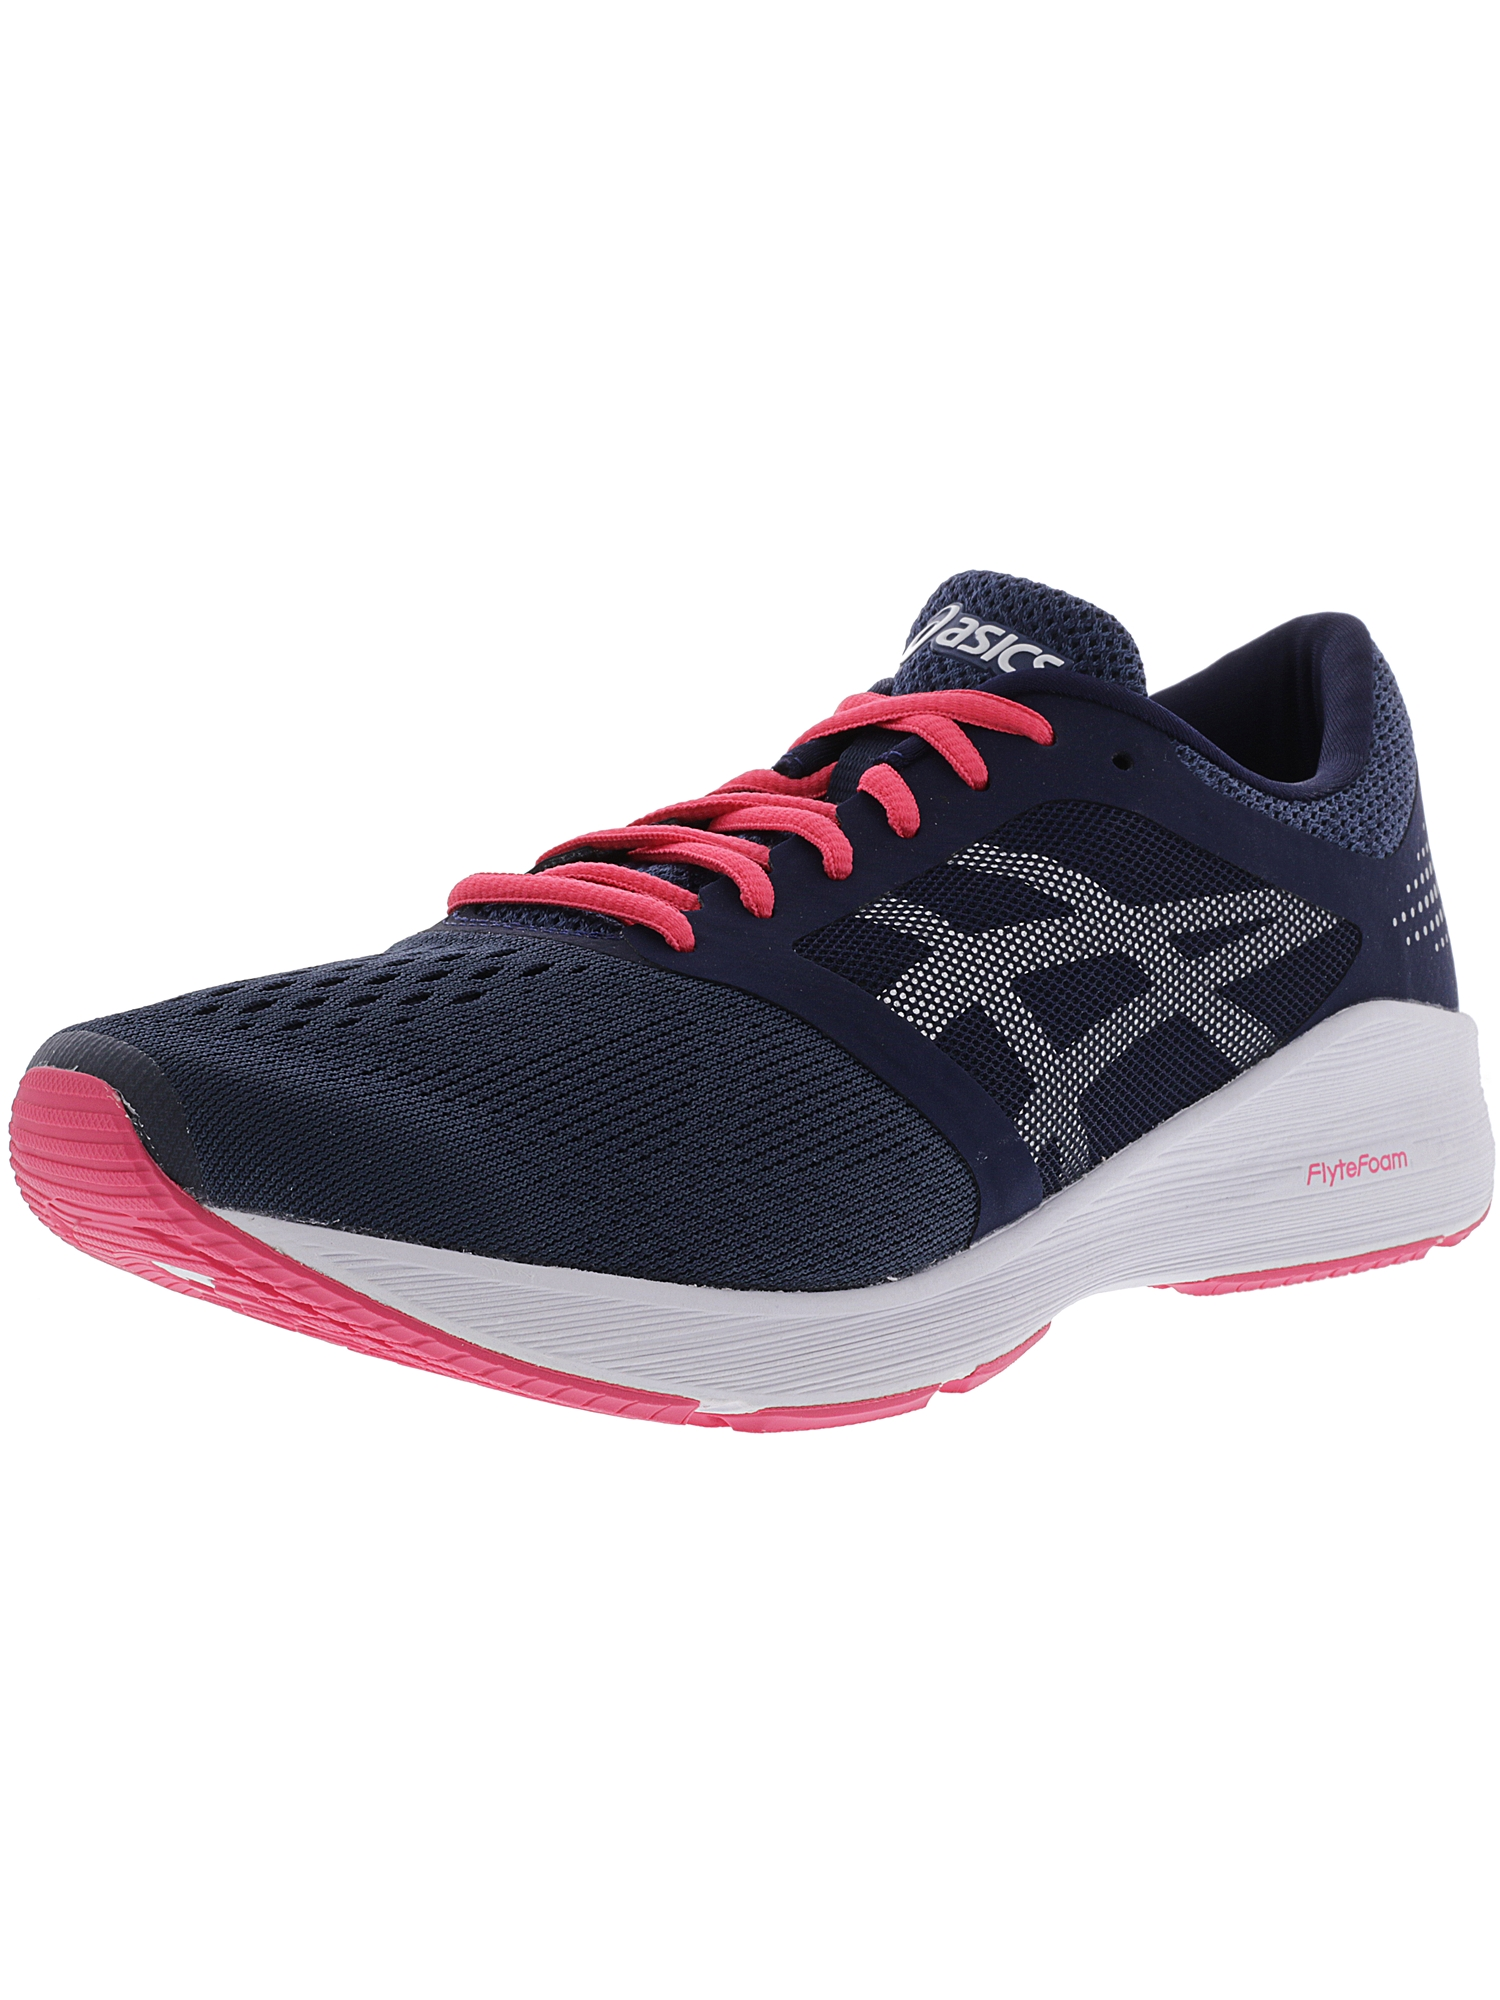 Asics Women's Roadhawk Ff Insignia Blue / Silver Rouge Red Ankle-High Fabric Running Shoe - 10.5M